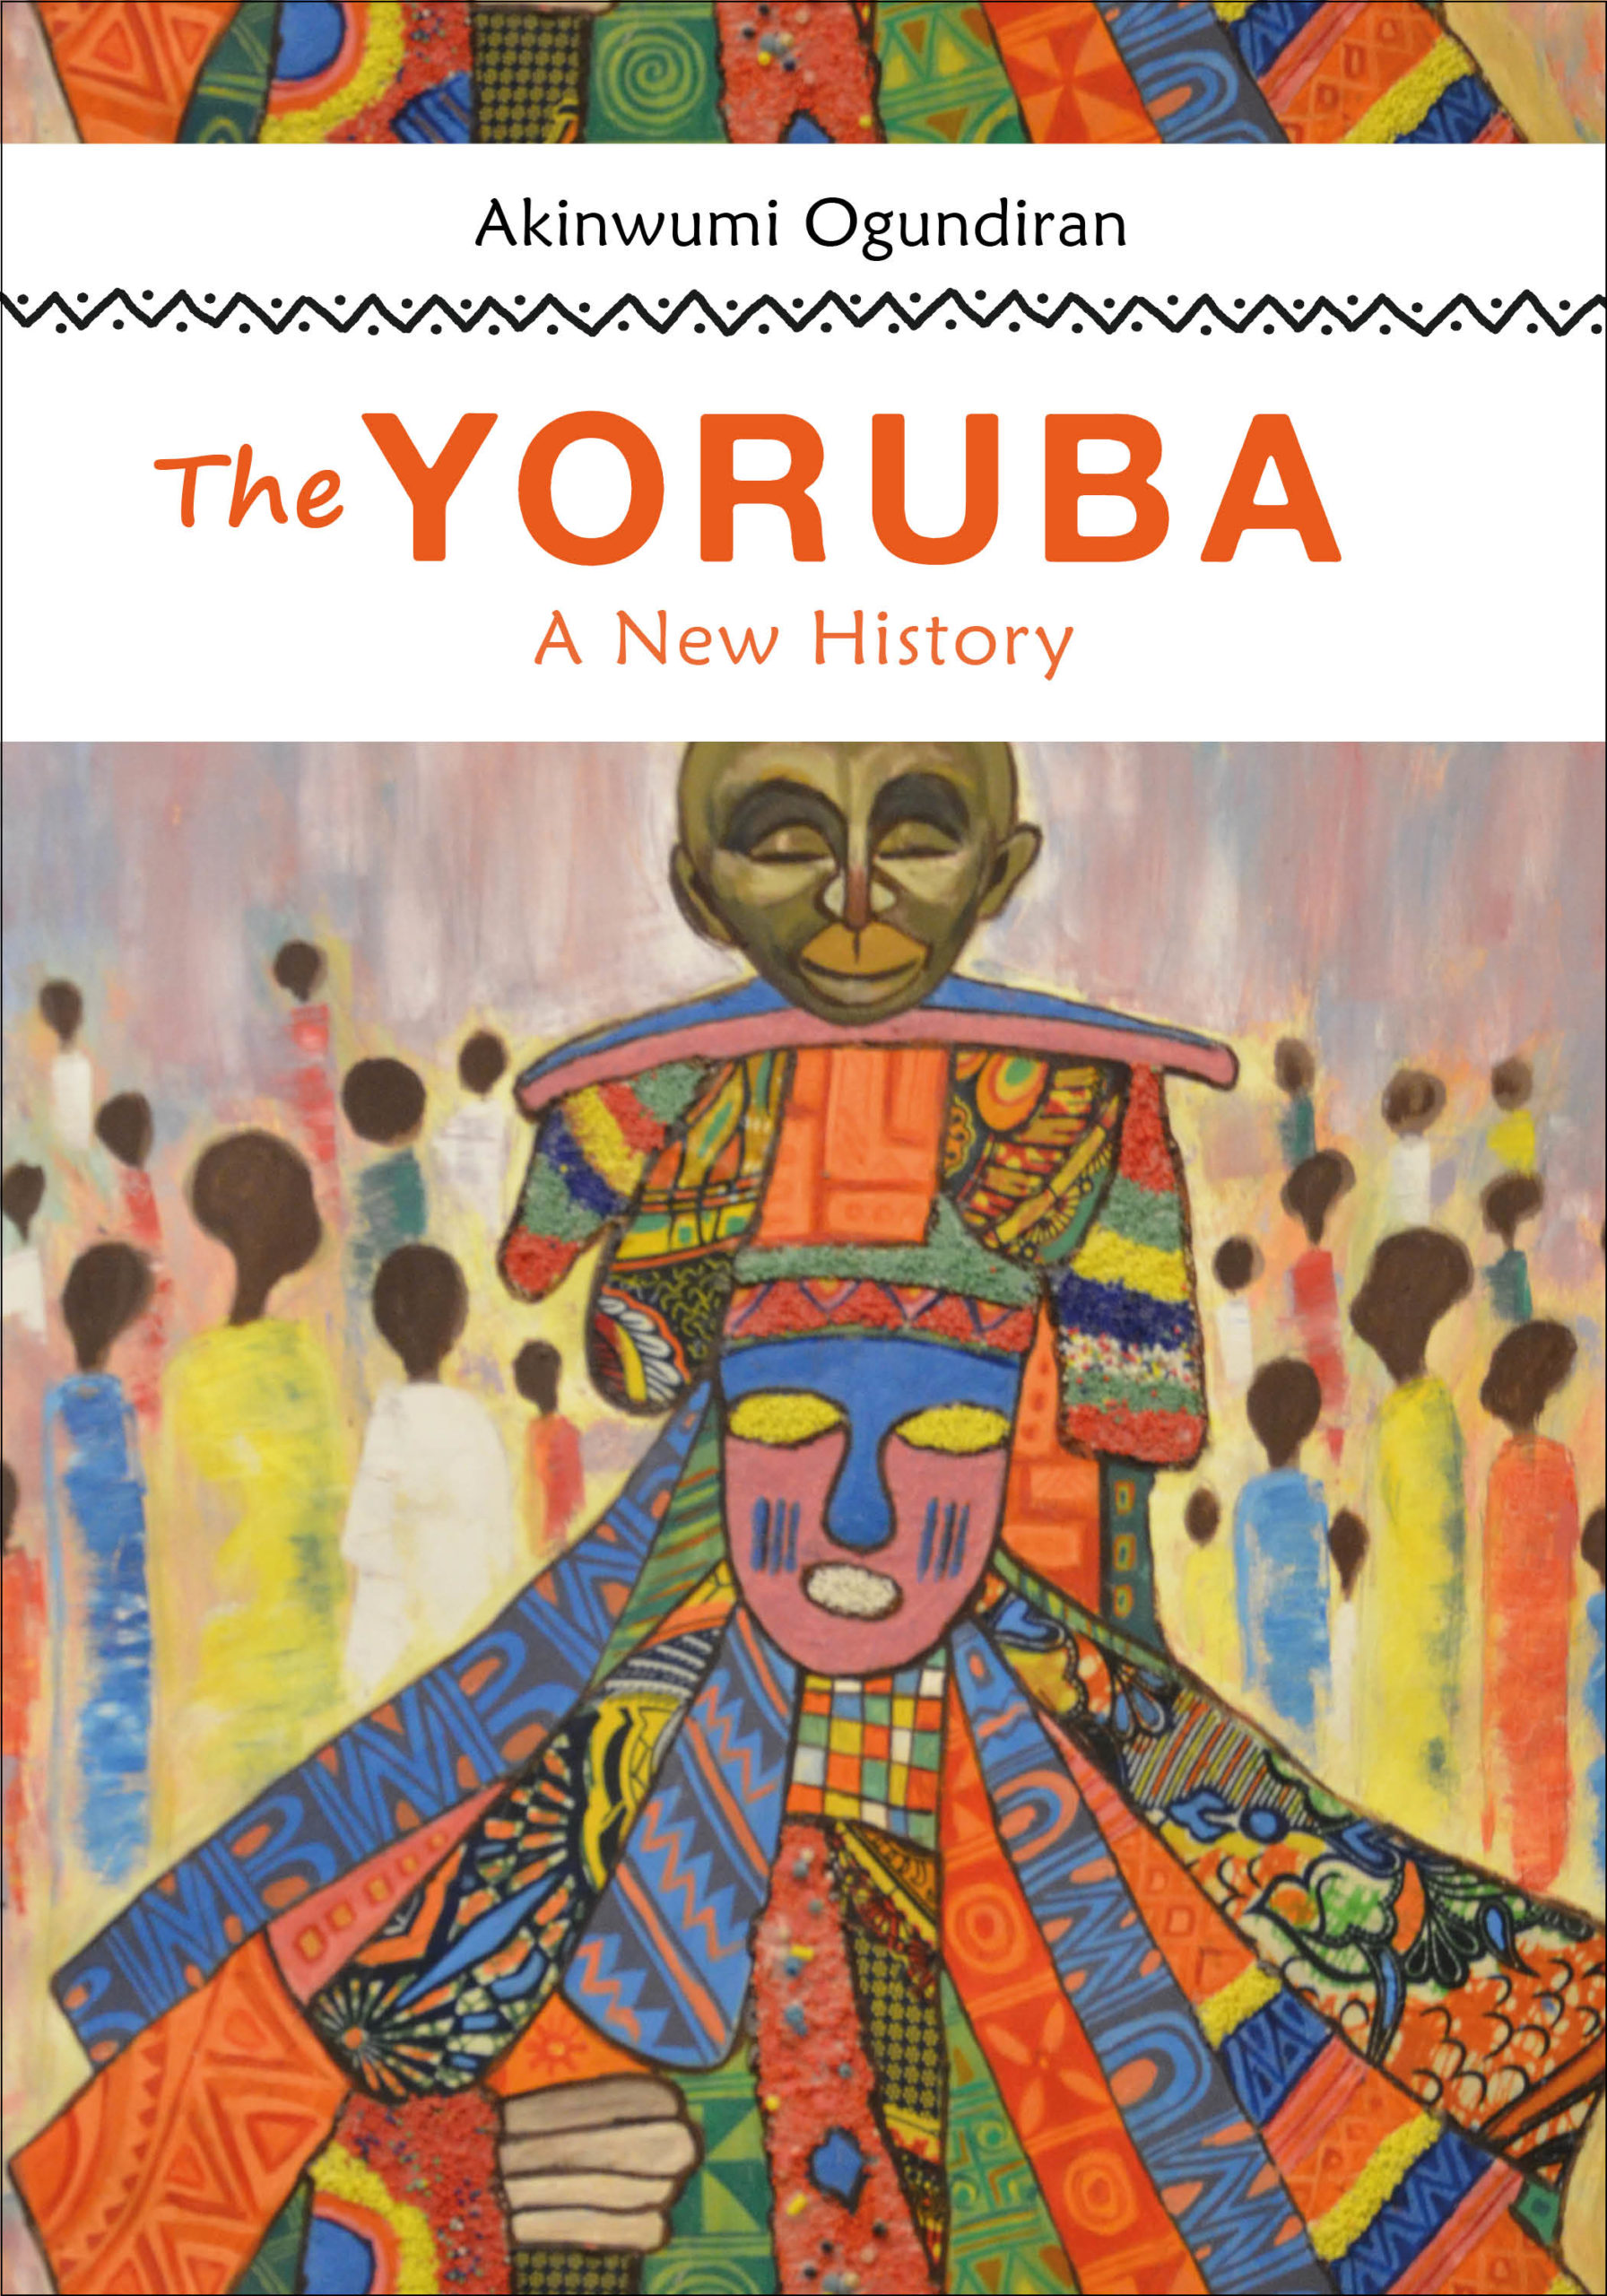 978-0-253-05149-3 pb Ogundiran_The Yoruba_A New History_F20_cvr_final